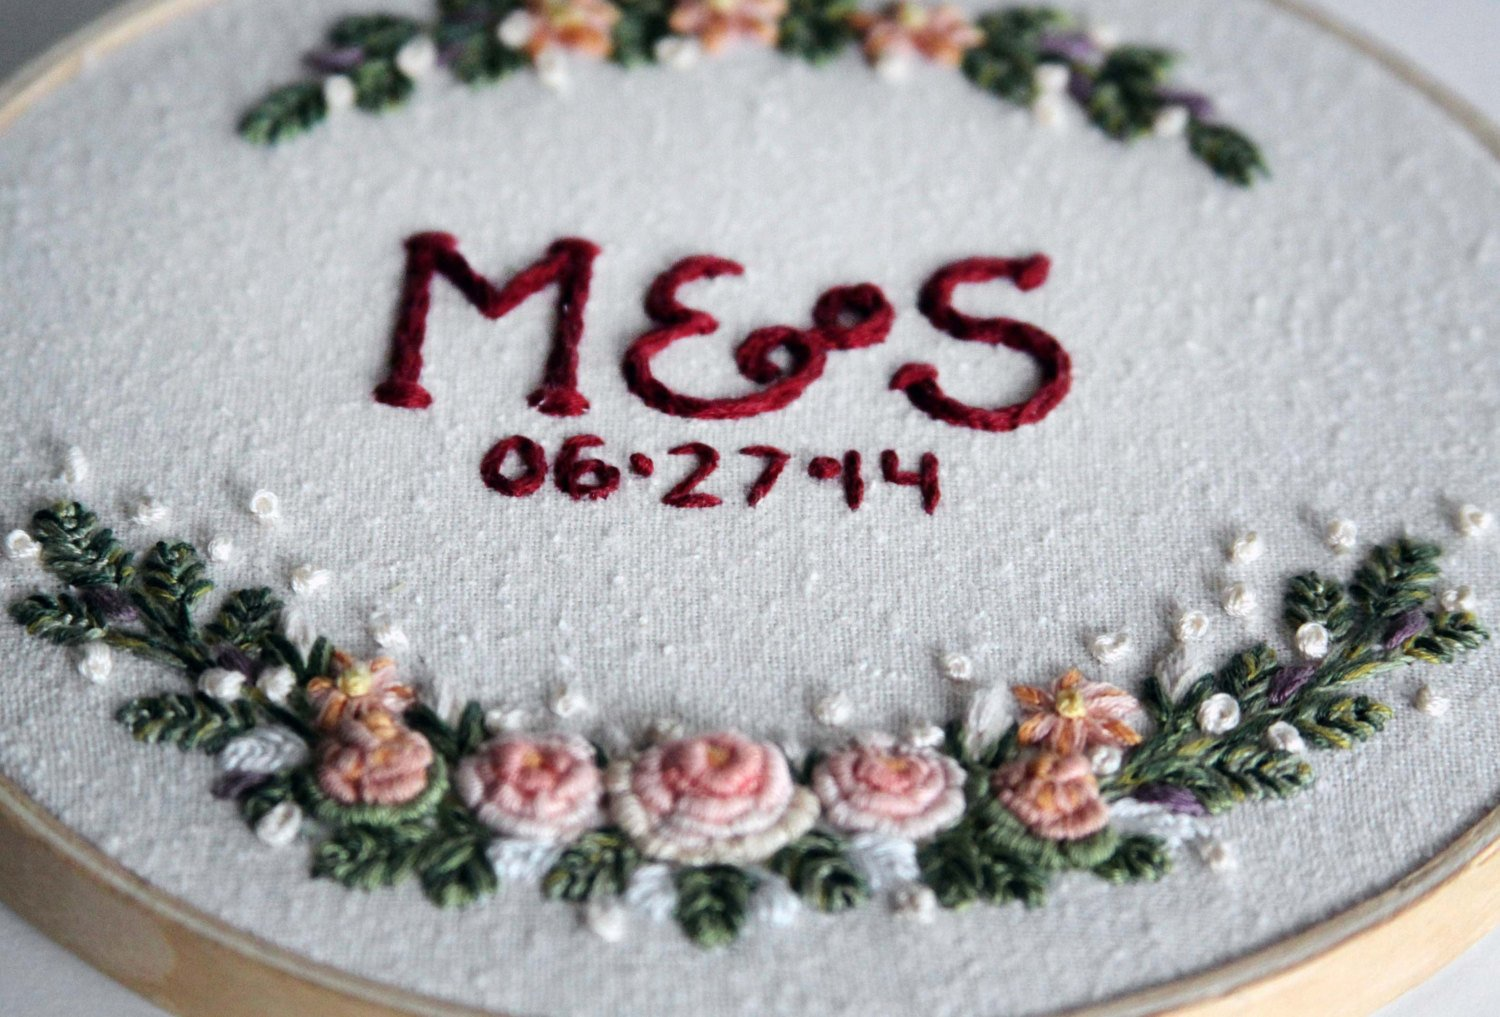 embroidery hoop table numbers via https://etsy.me/2xuxqky